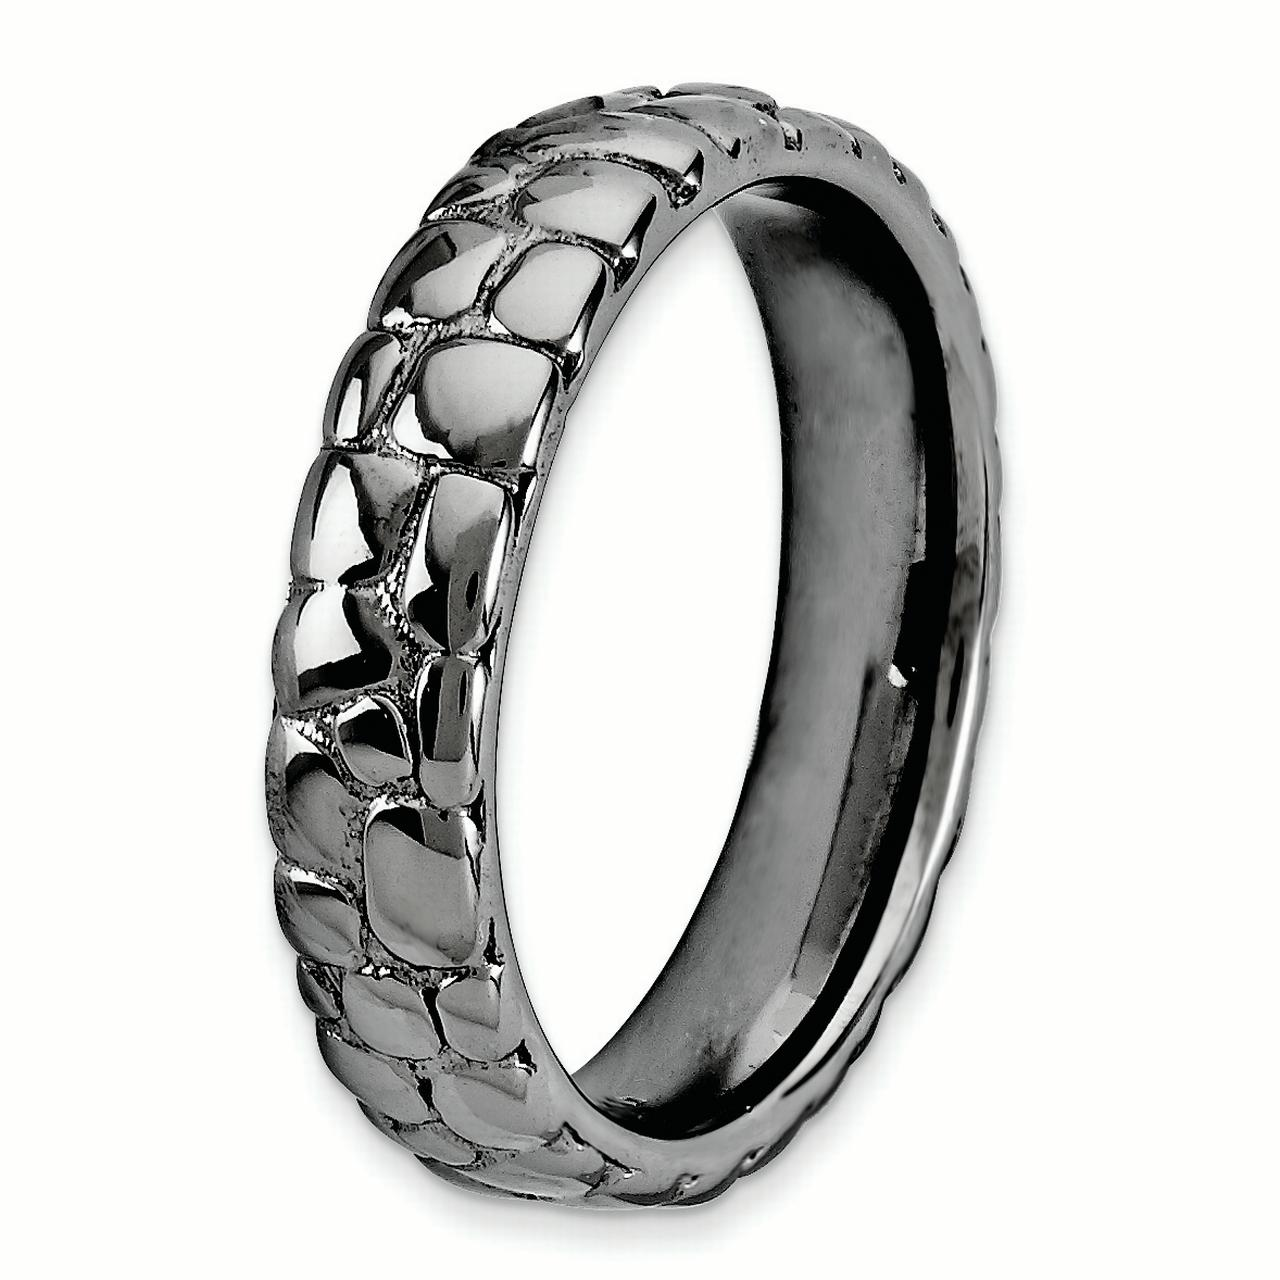 925 Sterling Silver Black Plated Band Ring Size 5.00 Stackable Fancy/ Fine Jewelry Gifts For Women For Her - image 2 of 4